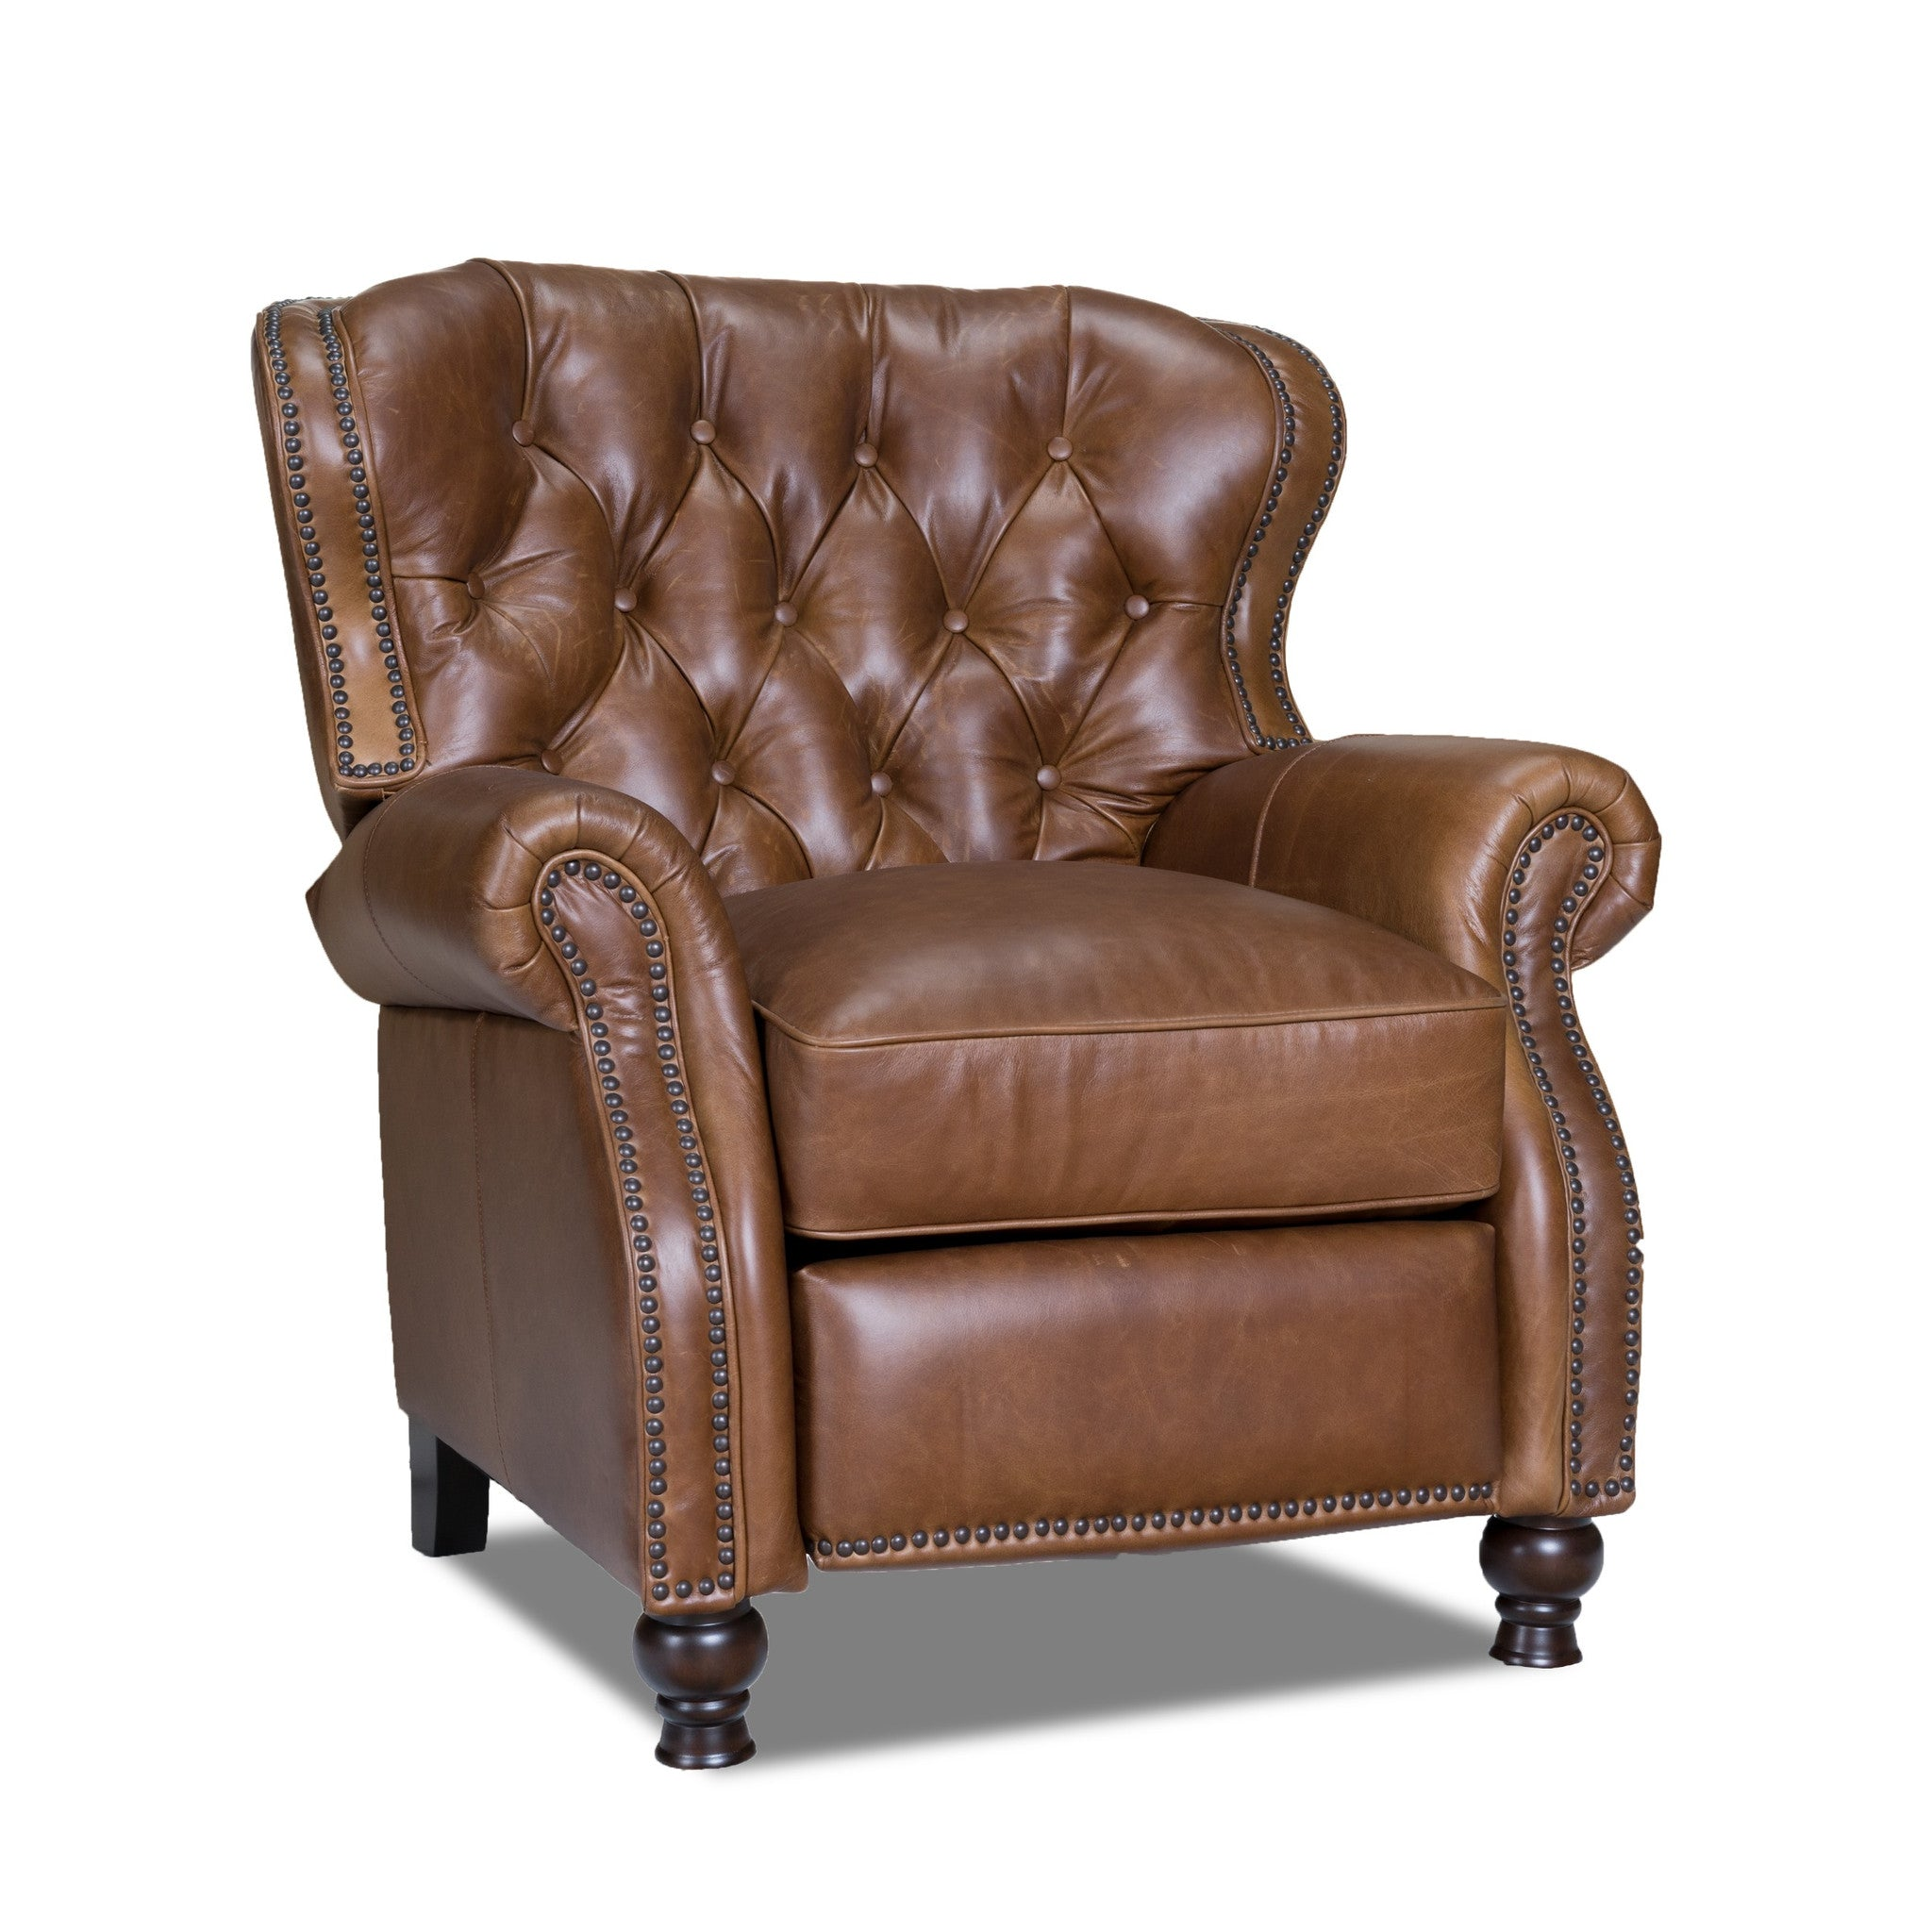 CAMBRIDGE RECLINER - Coventry Saddle